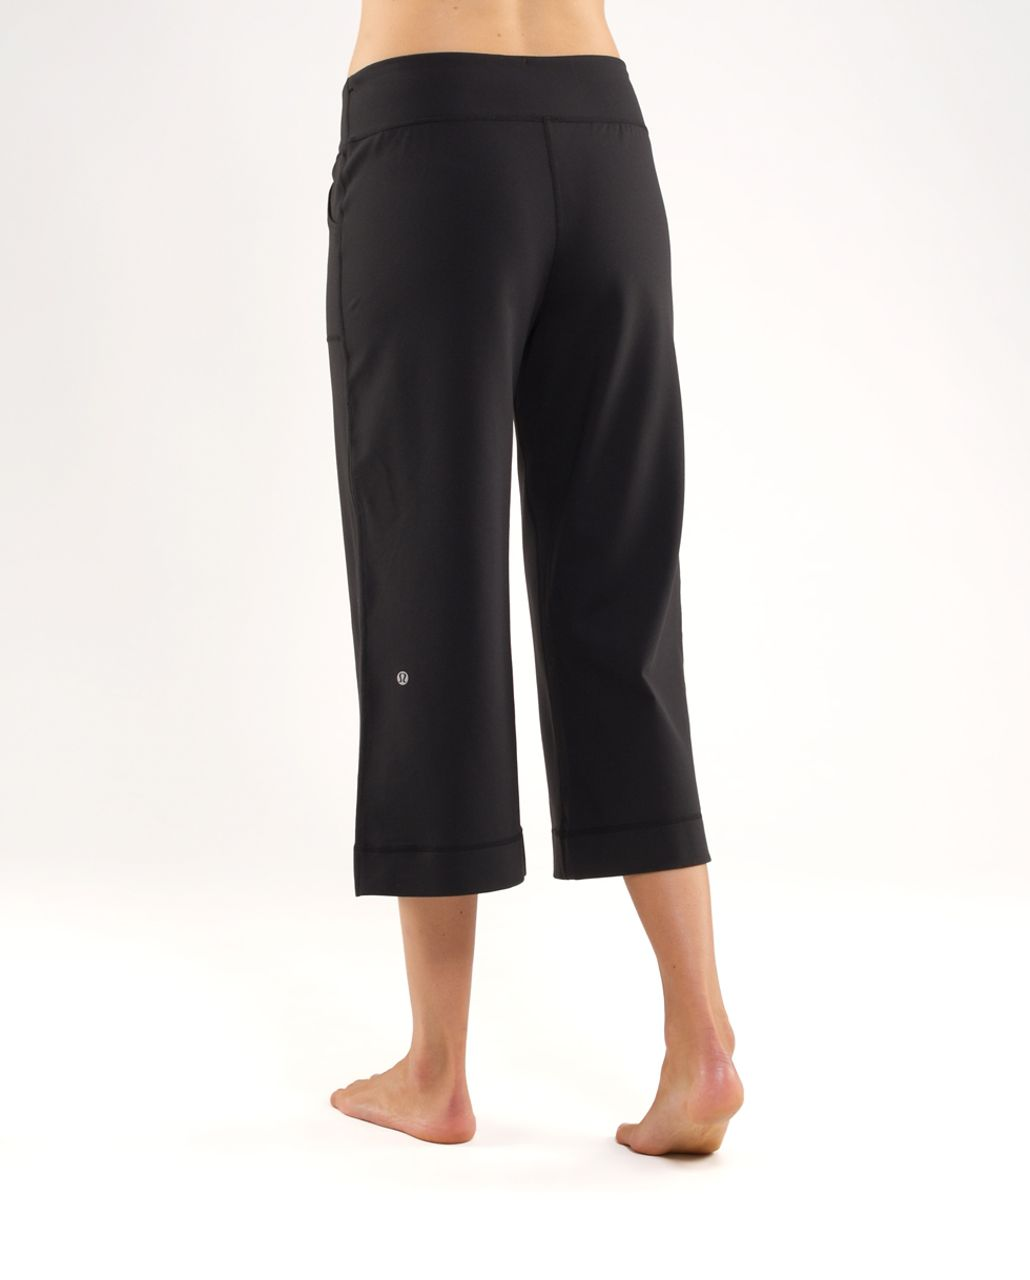 d2139dea94dc0 Lululemon Still Crop - Black - lulu fanatics